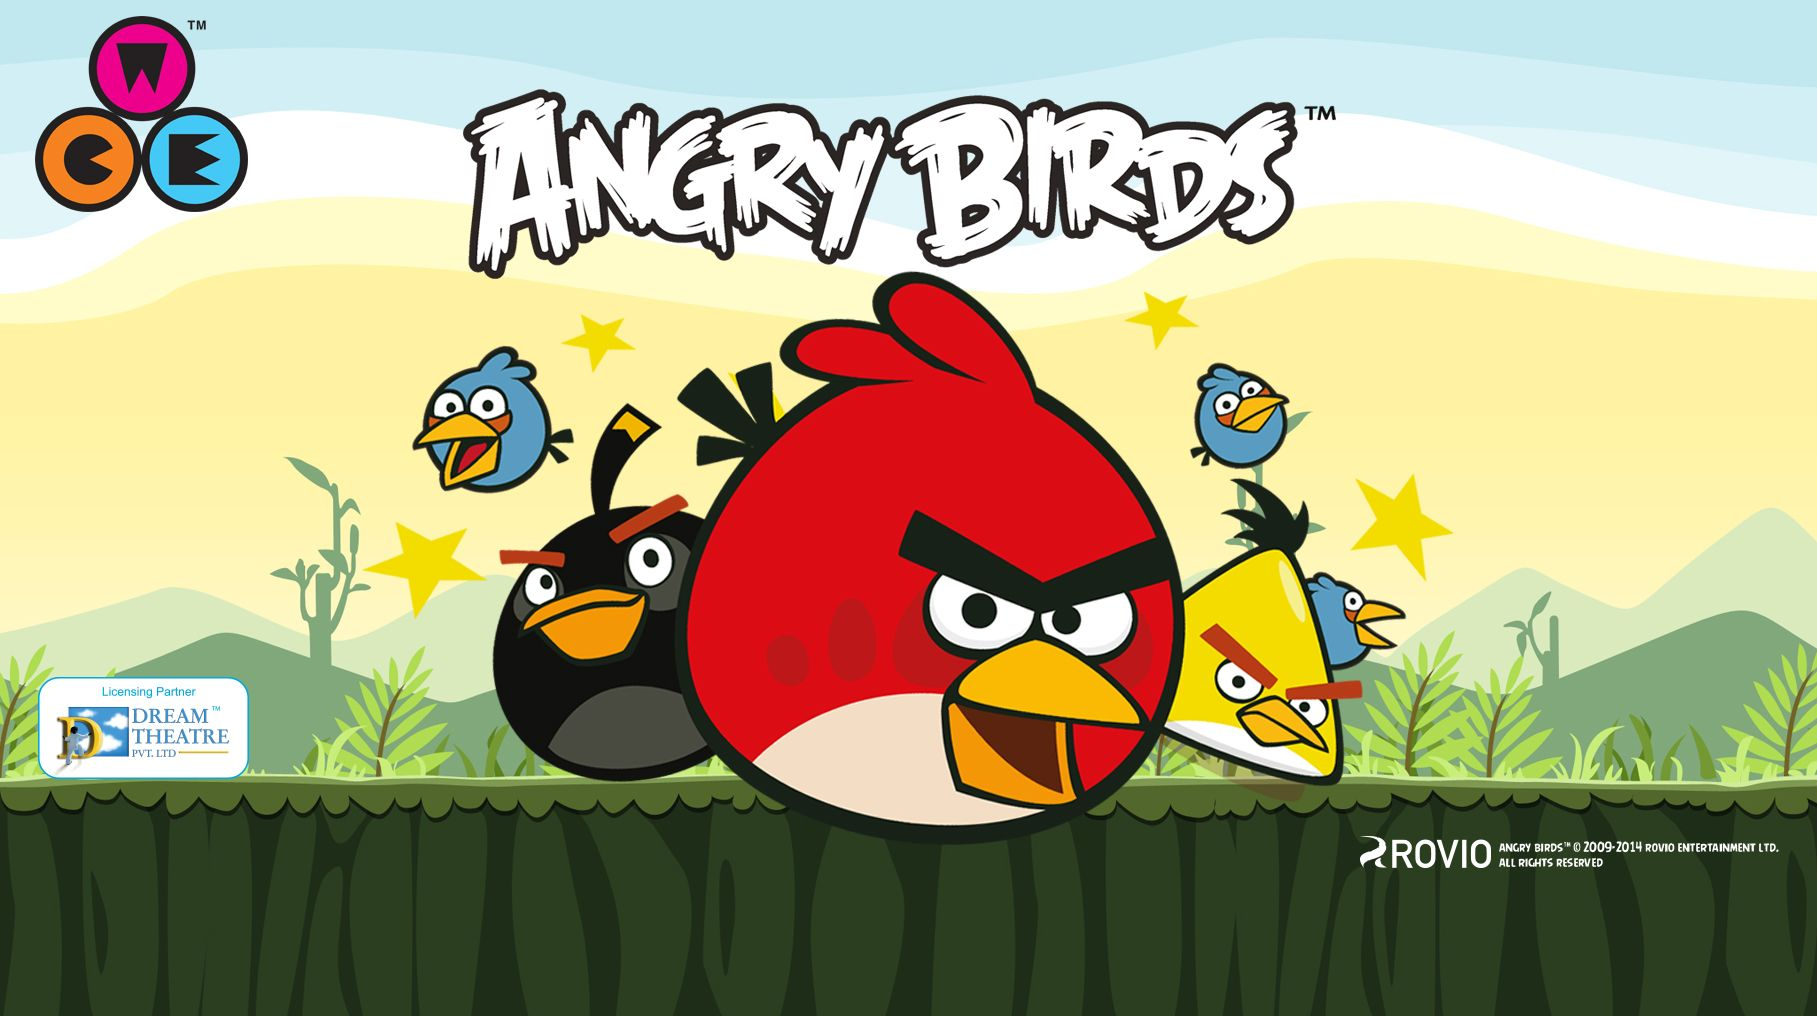 Angry Birds was the star attraction at World Children Expo with young and old alike vying to play the Angry Birds game and buy the Angry Birds products. World Children Expo 2014 was held in Ambience mall Gurgaon, dedicated to kids, families and fun!